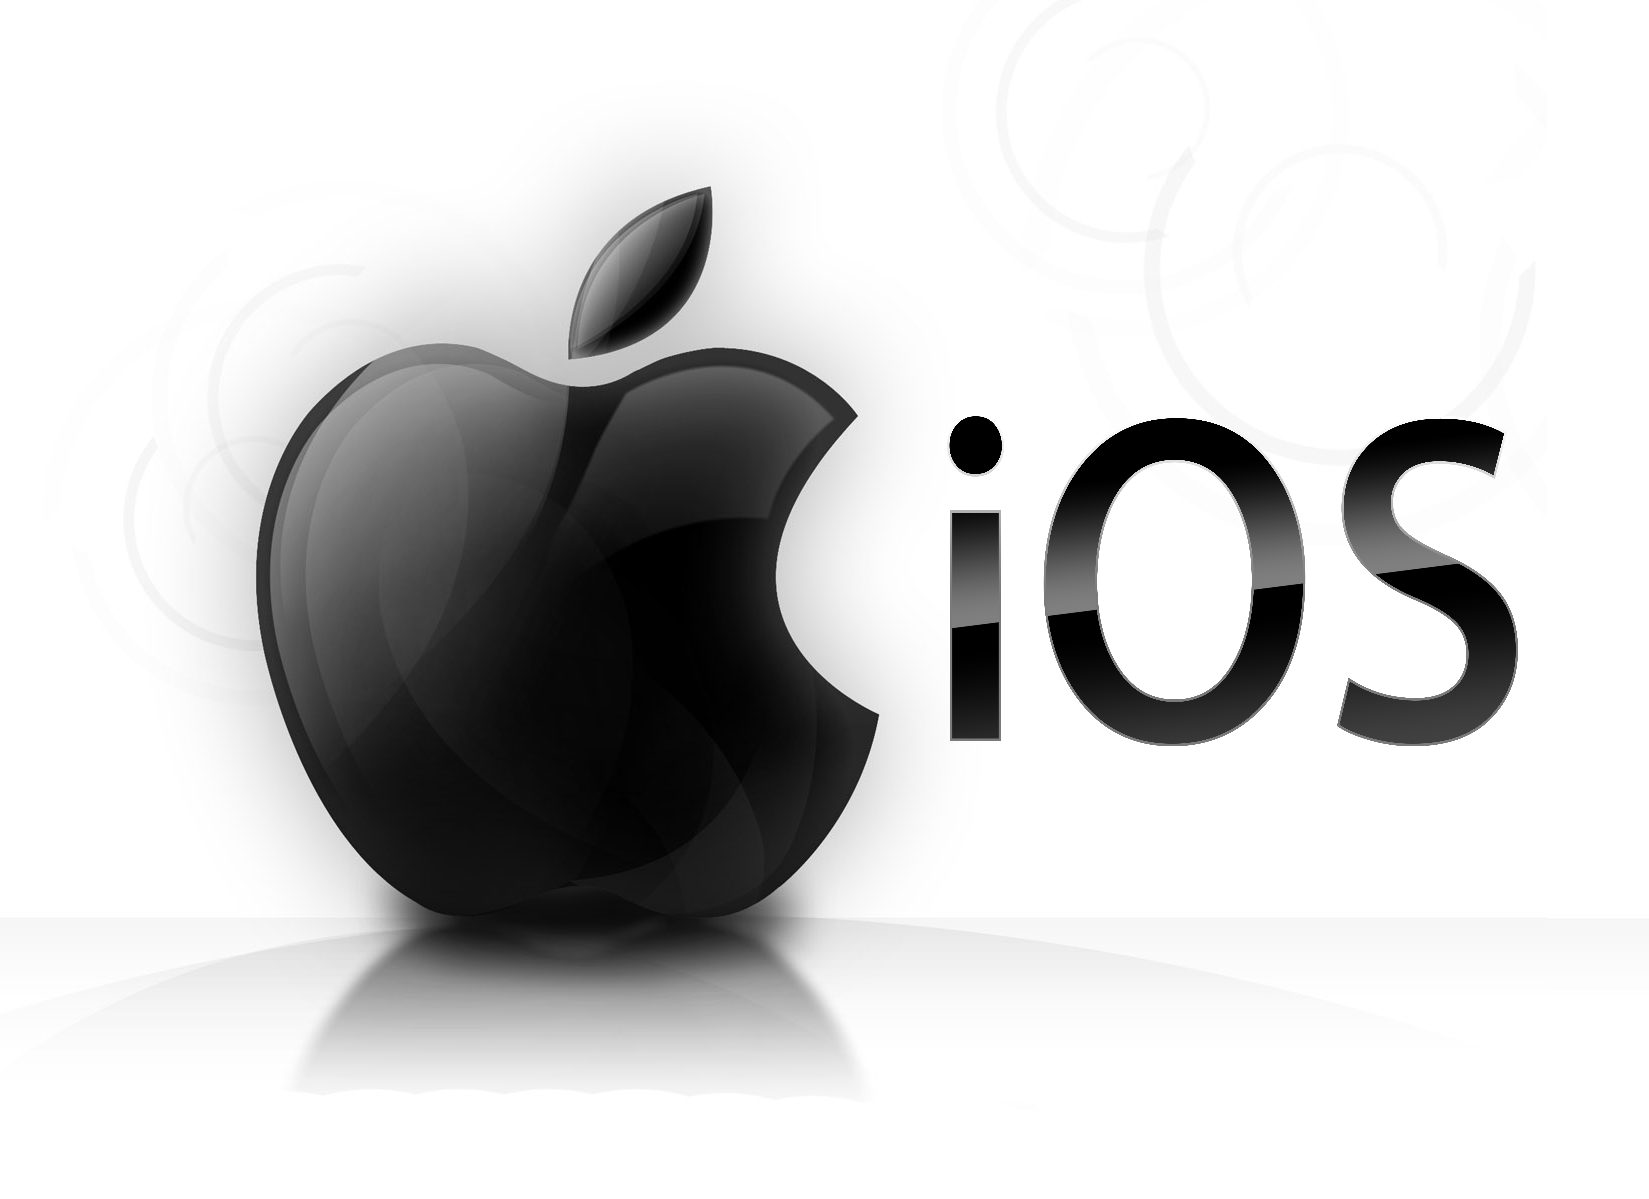 Logo Apple Ios Png - Apple Ios Update, Transparent background PNG HD thumbnail